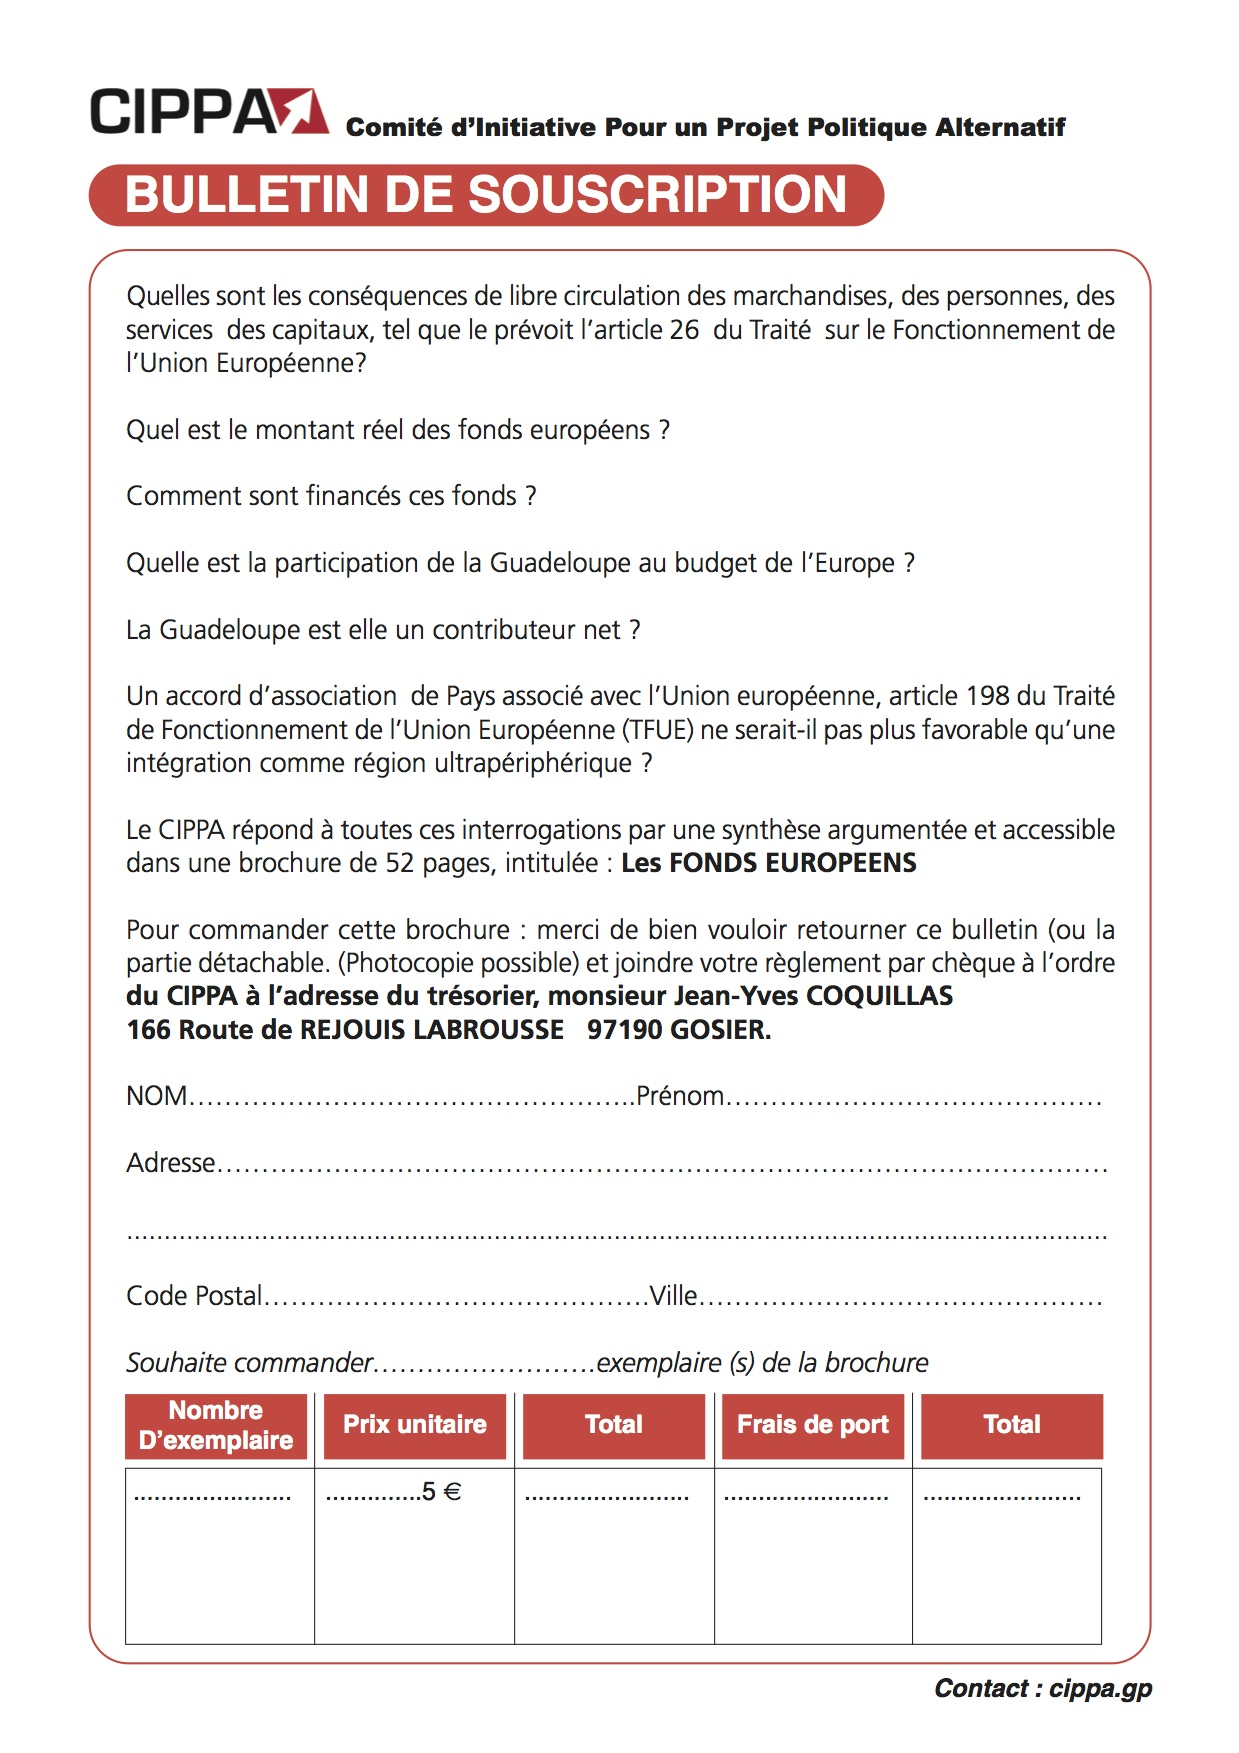 Bon de souscription cippa_Mise en page 1 (7) - copie